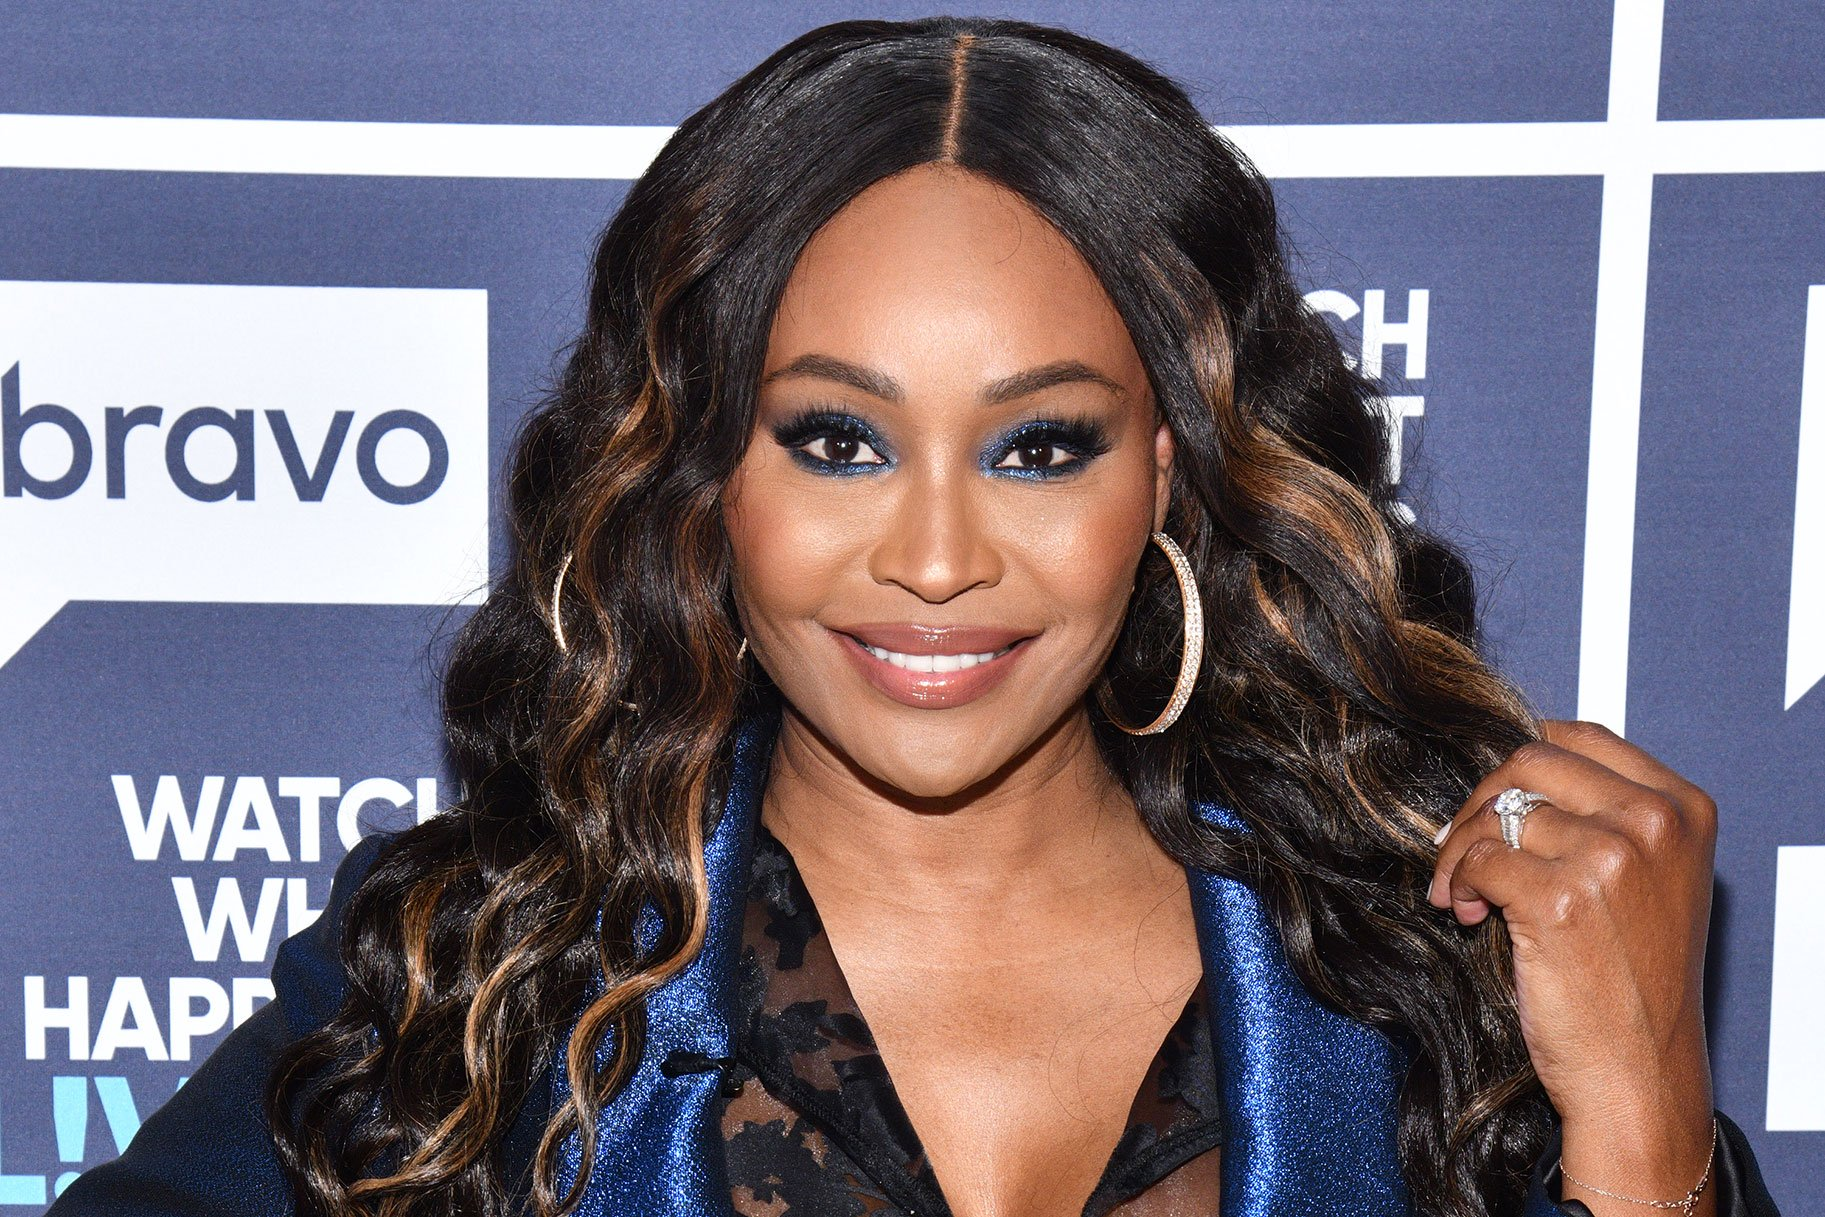 Cynthia Bailey Is Heartbroken After The Loss Of A Loved One